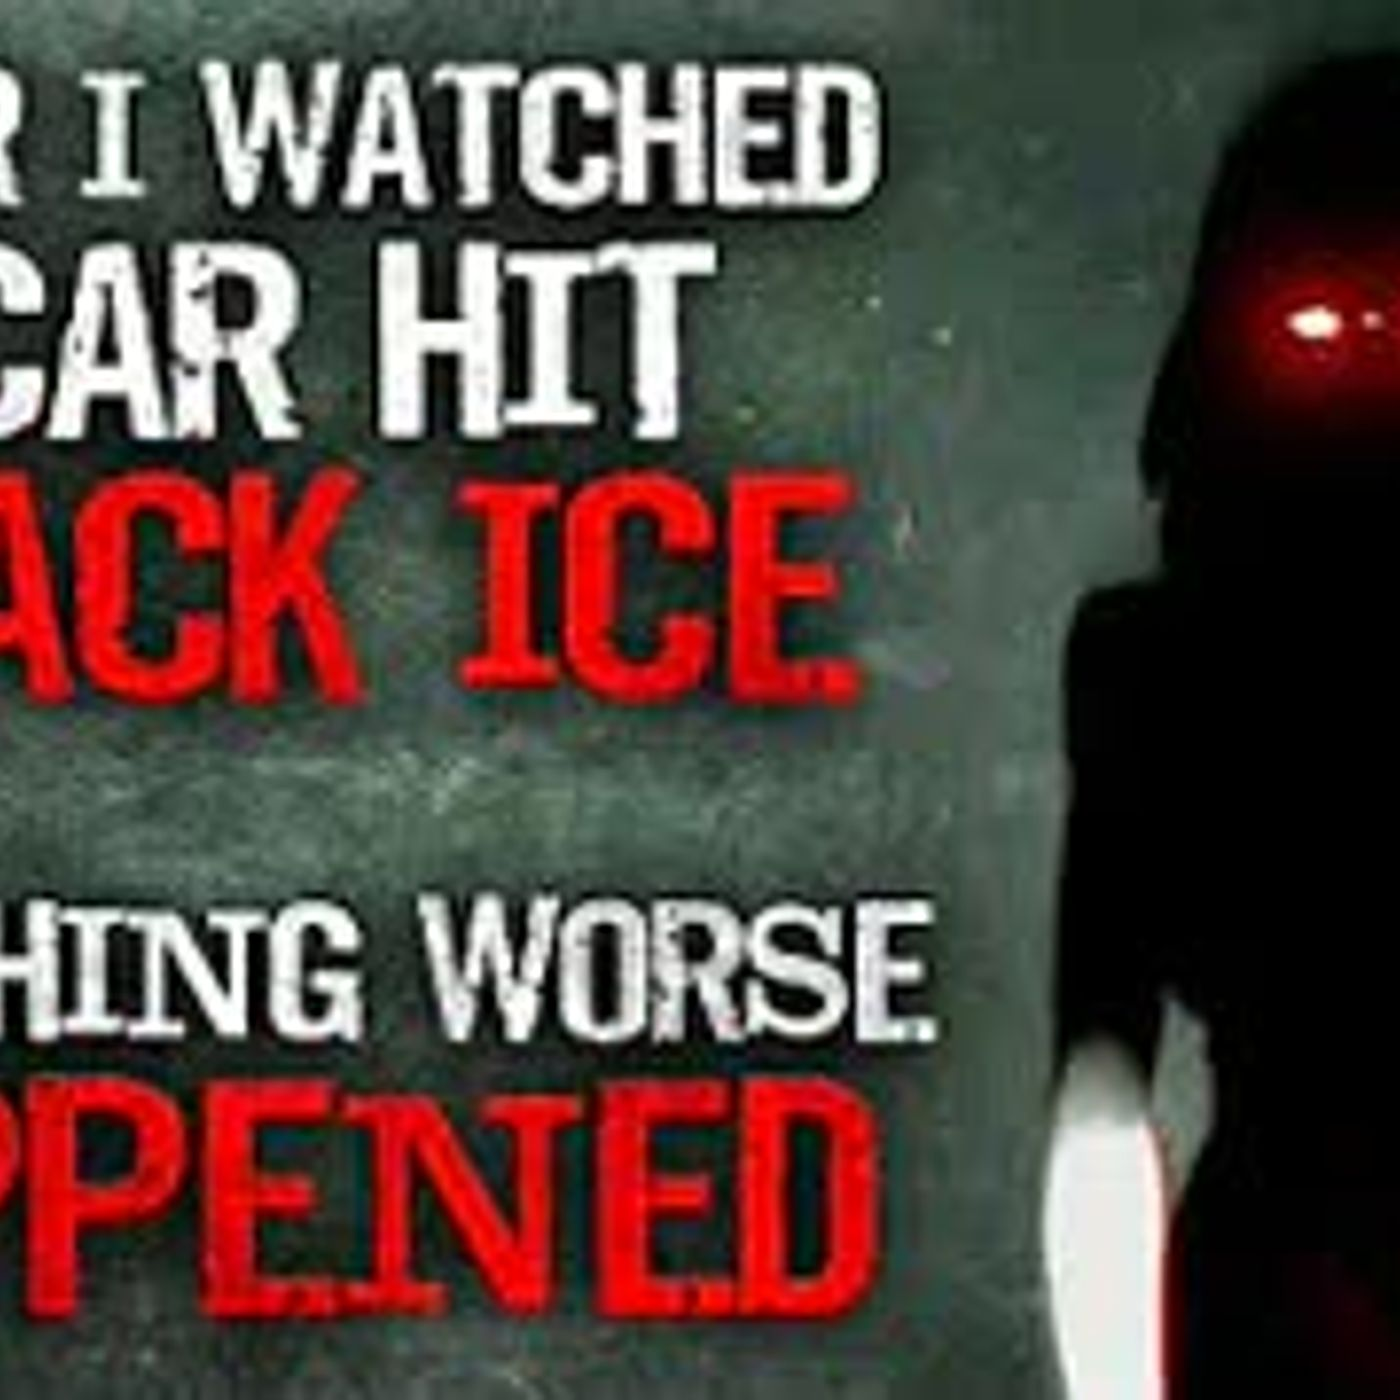 """After I watched a car hit black ice, something worse happened""  Creepypasta"